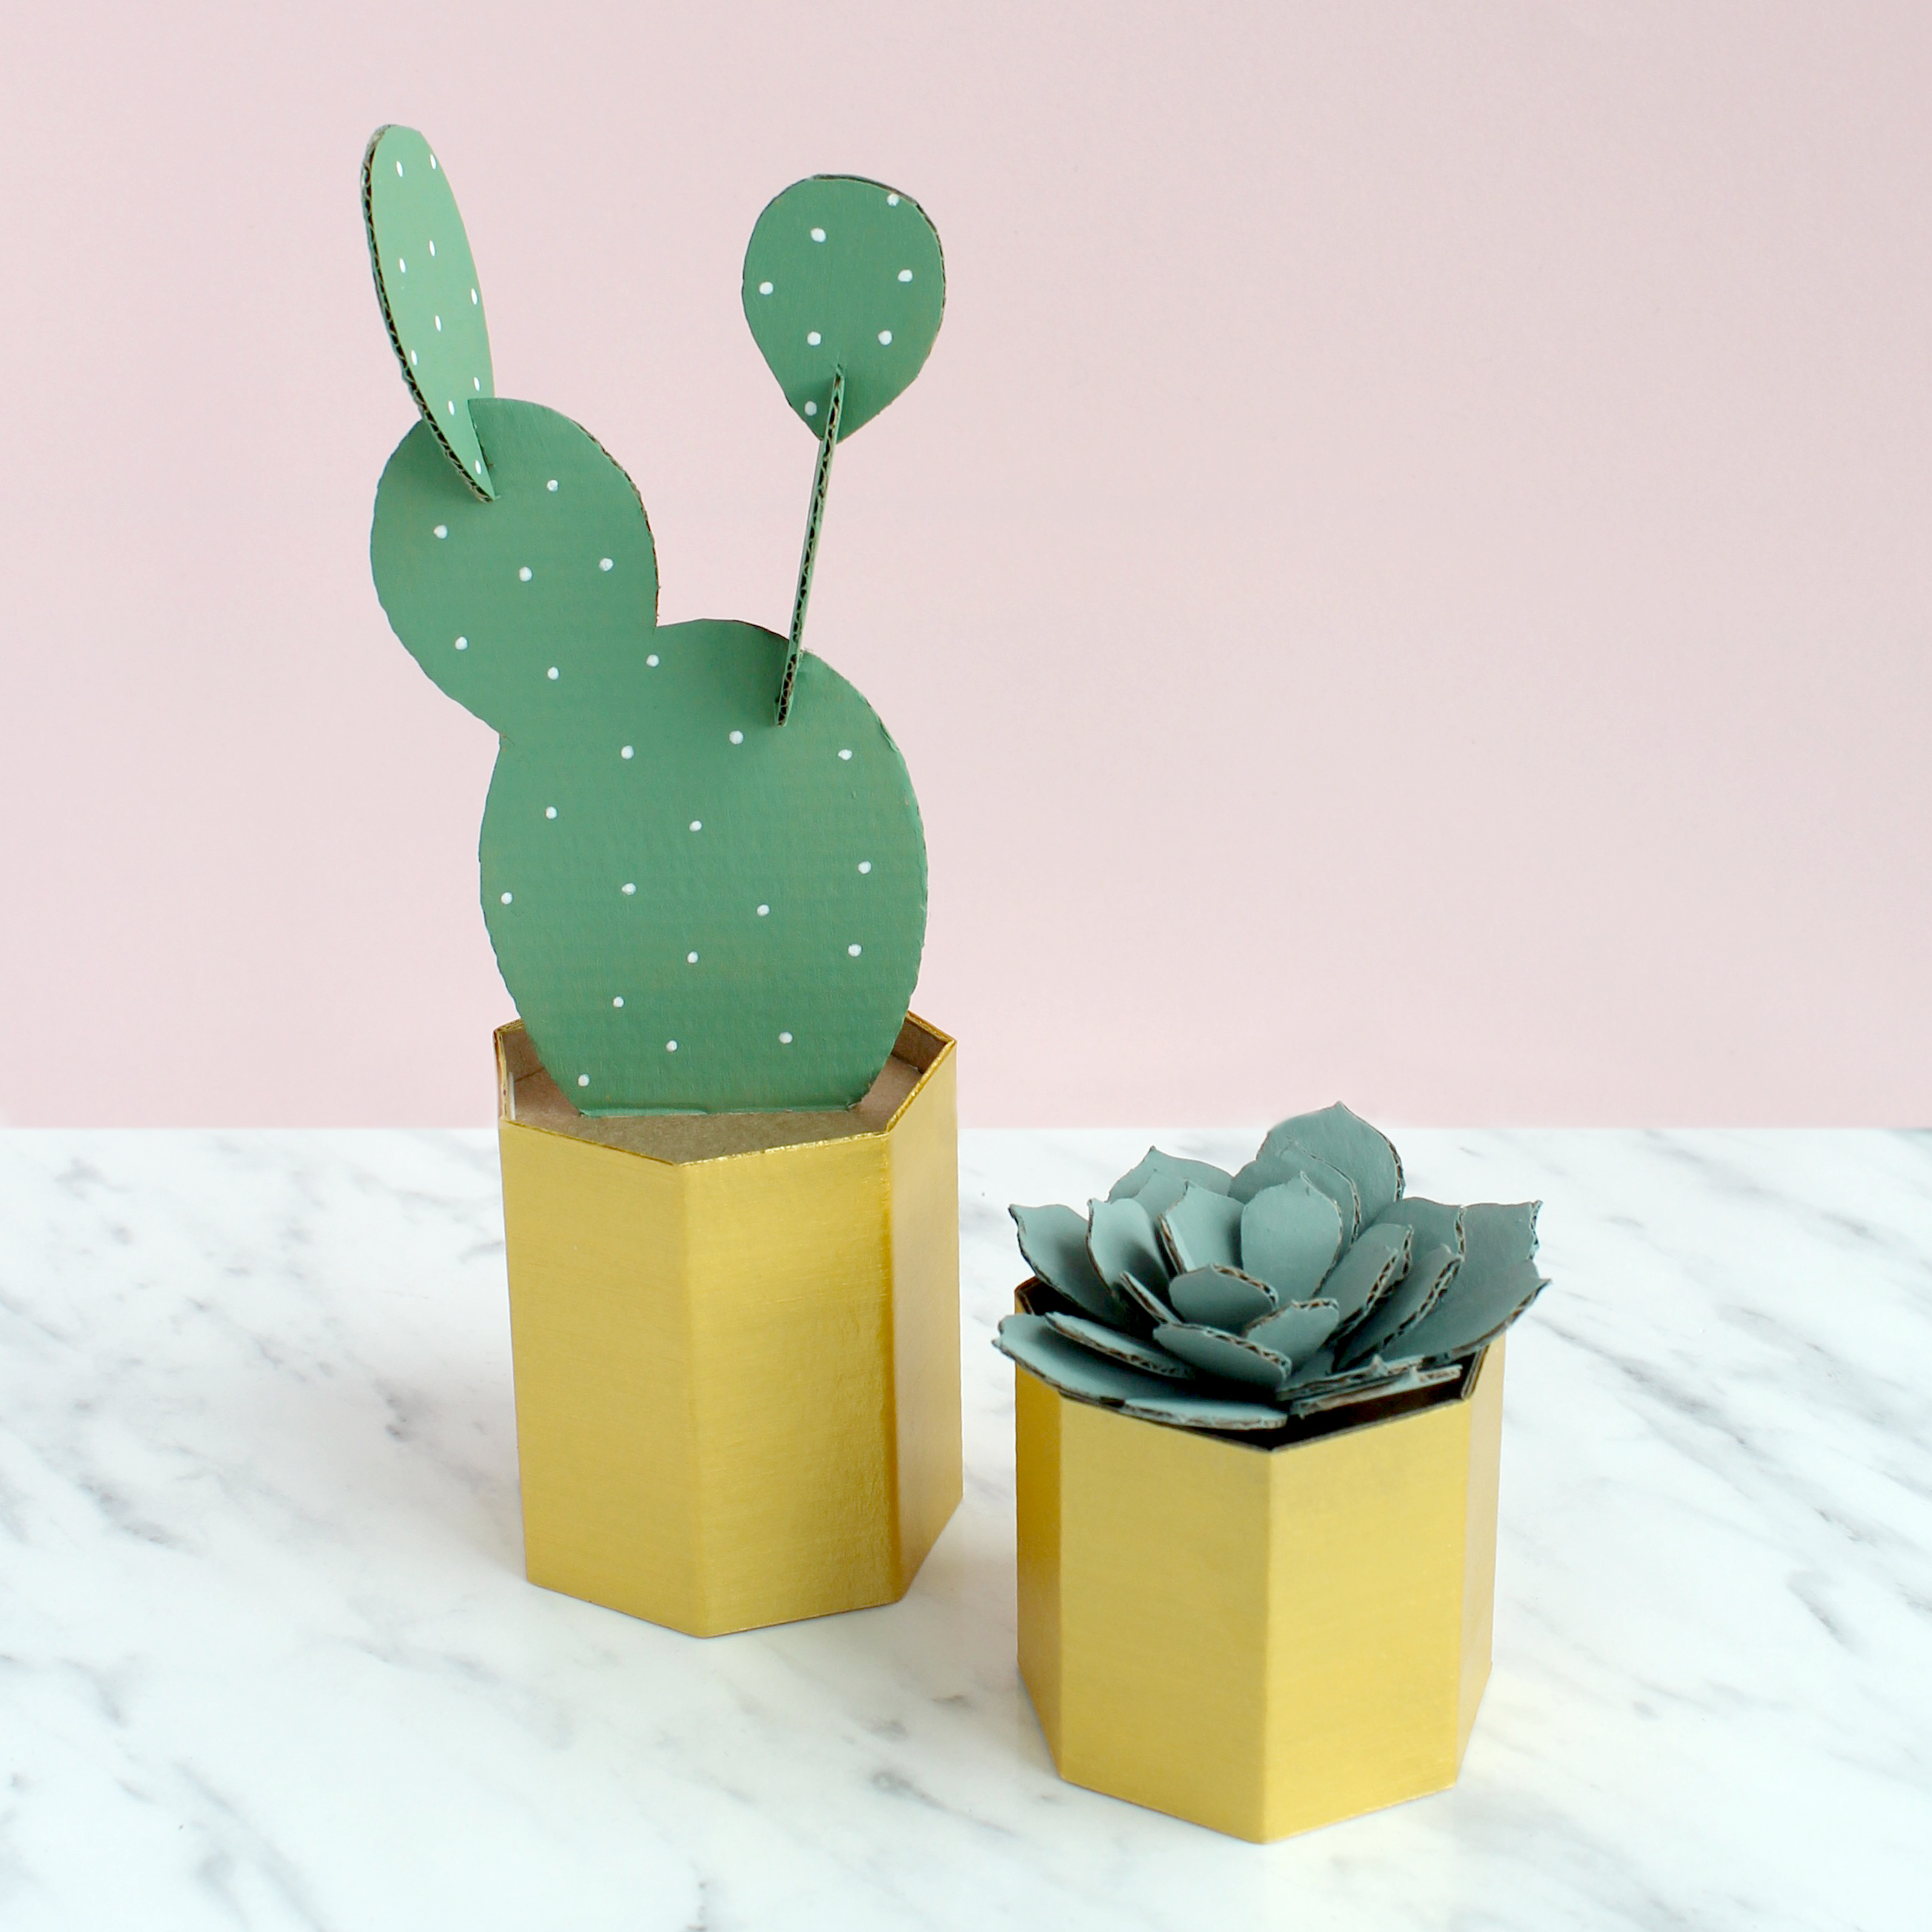 Cardboard Cactus and Succulent Pot DIY Project